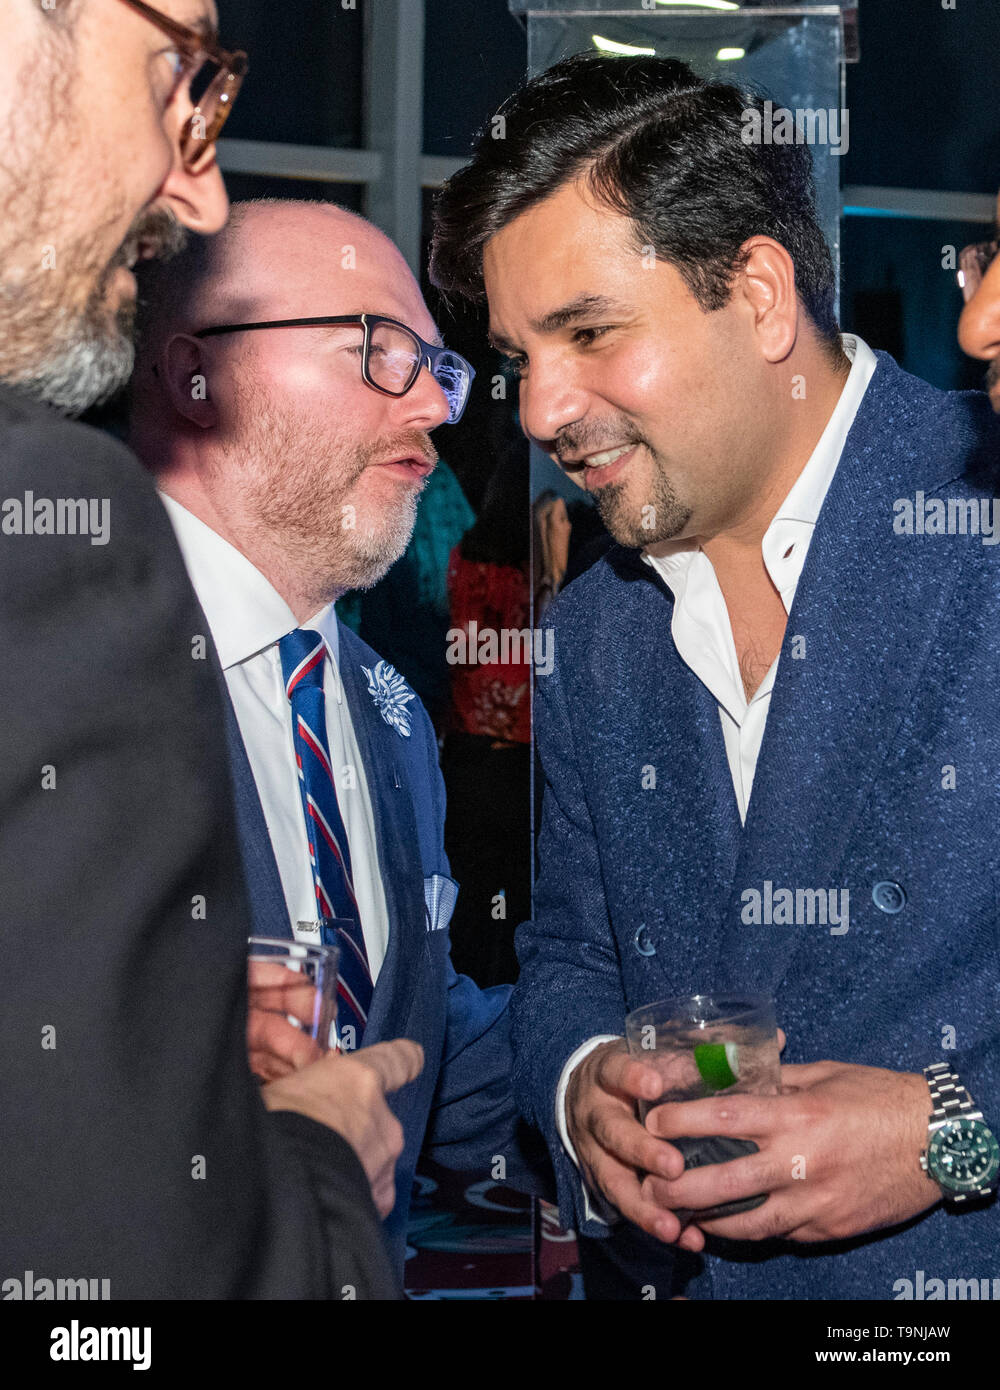 Washington, DC. 26th Apr, 2019. Qatar's Ambassador to the United States, Sheikh Meshal Bin Hamad Al-Thani, right, smiles during a conversation with Paul Hamill, of Logan International Relations and executive director of the Qatar-America Institute, left center, during Qatar's White House Correspondents Association pre-party in Washington, DC, on April 26, 2019. Credit: Ron Sachs/CNP | usage worldwide Credit: dpa/Alamy Live News - Stock Image